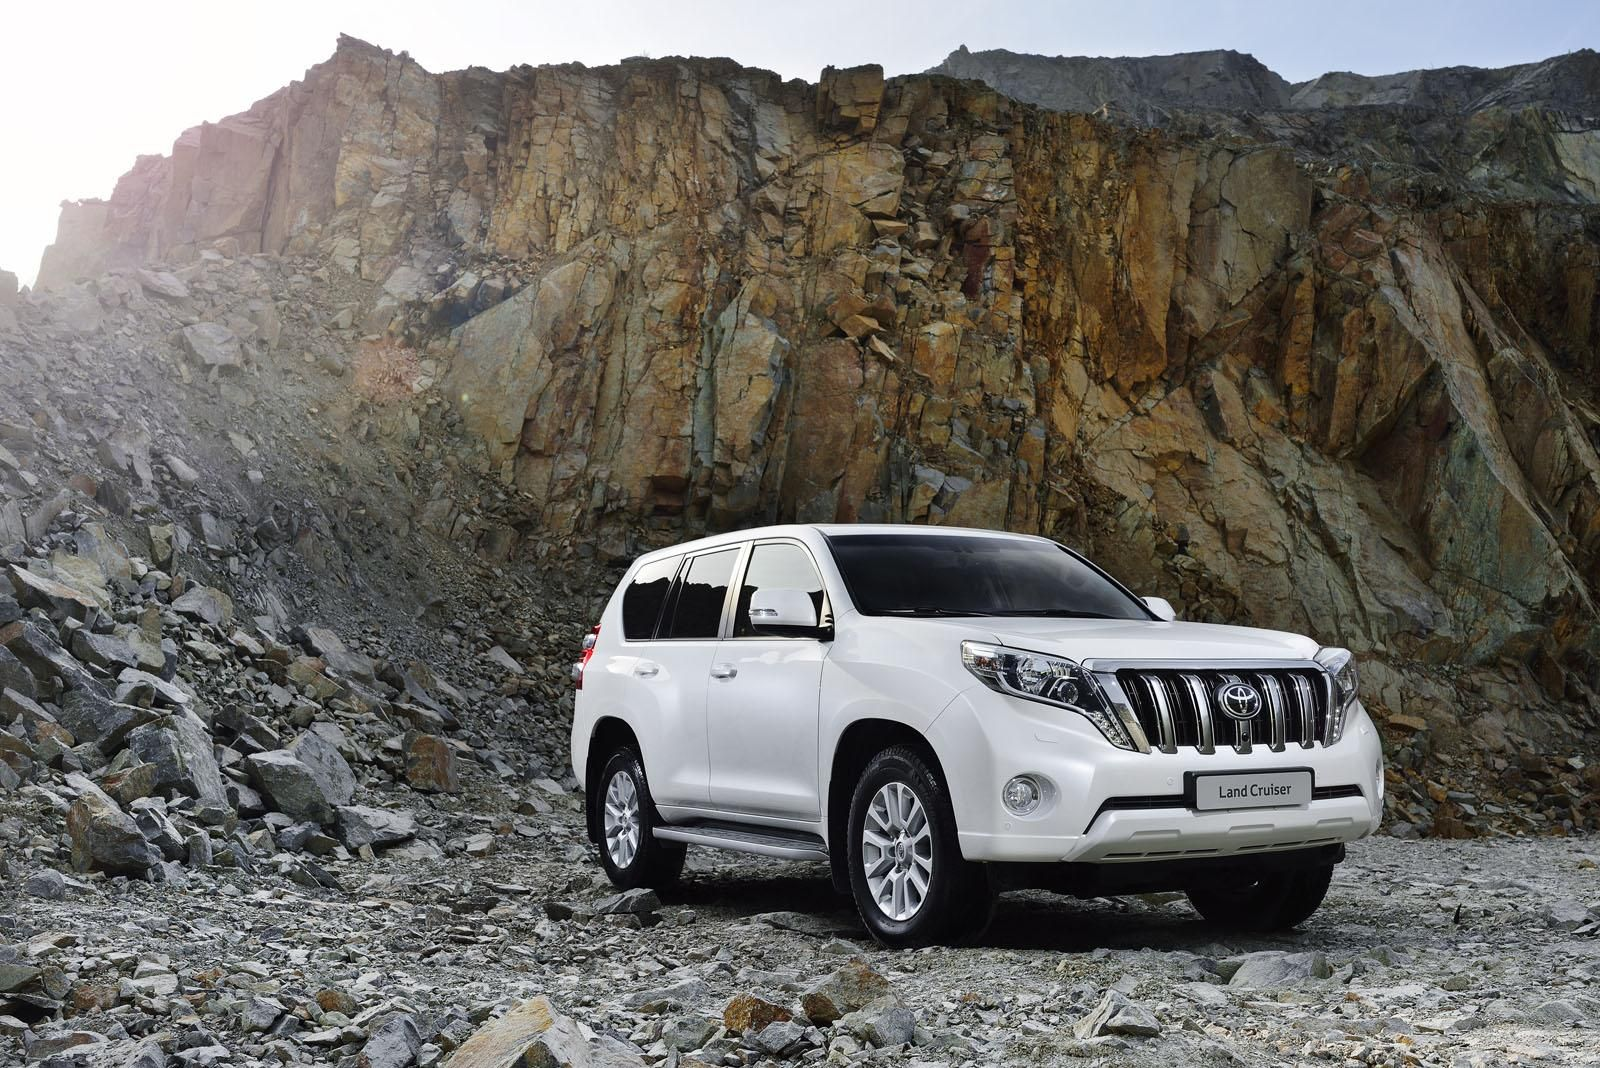 2015 toyota land cruiser also known as prado in asia and australia